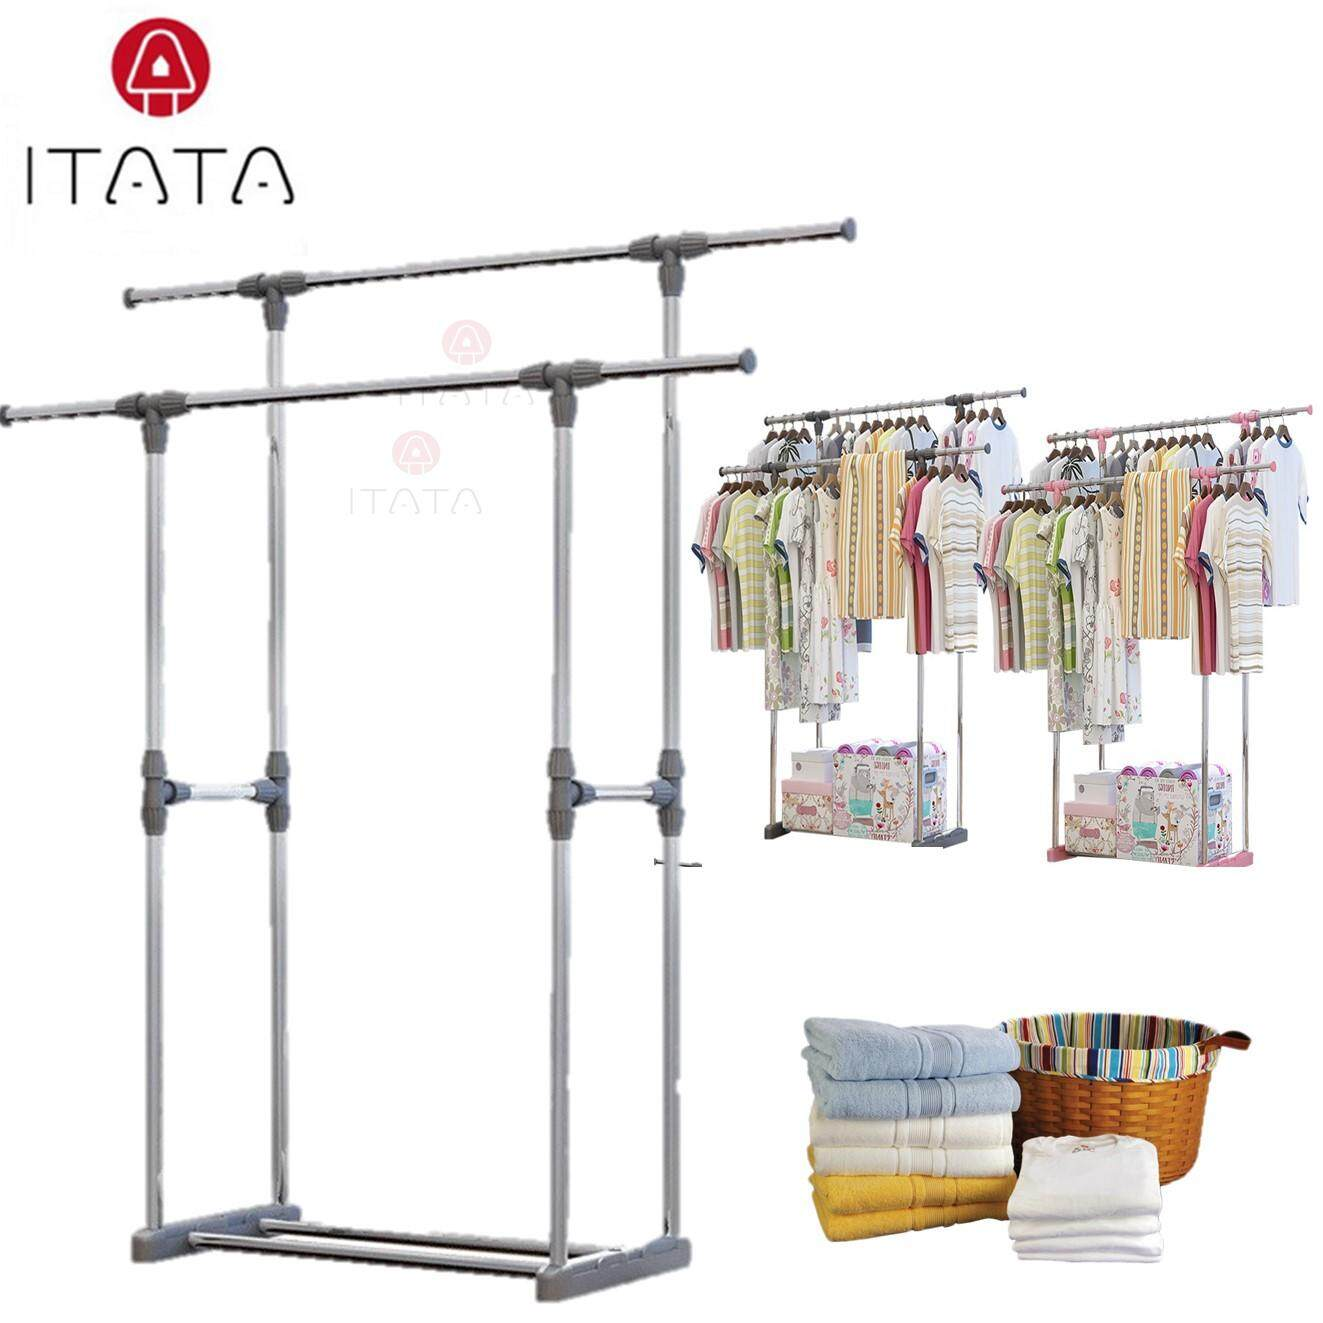 Home Clothes Line & Drying Racks - Buy Home Clothes Line & Drying ...